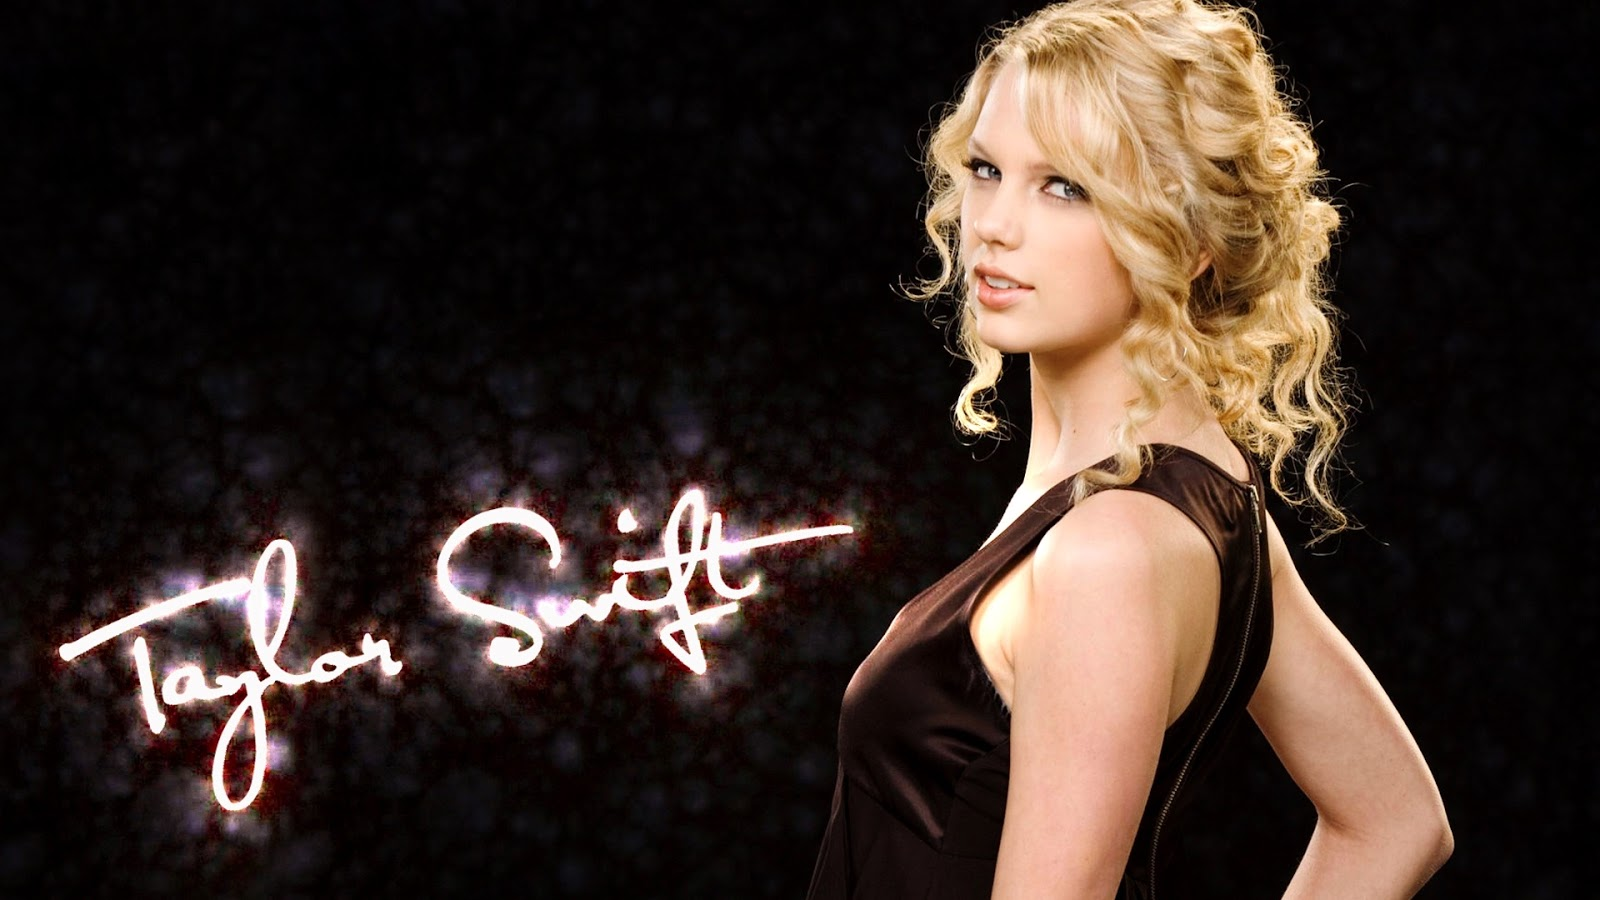 COOGLED TAYLOR SWIFT CUTE HD WALLPAPERS 1600x900